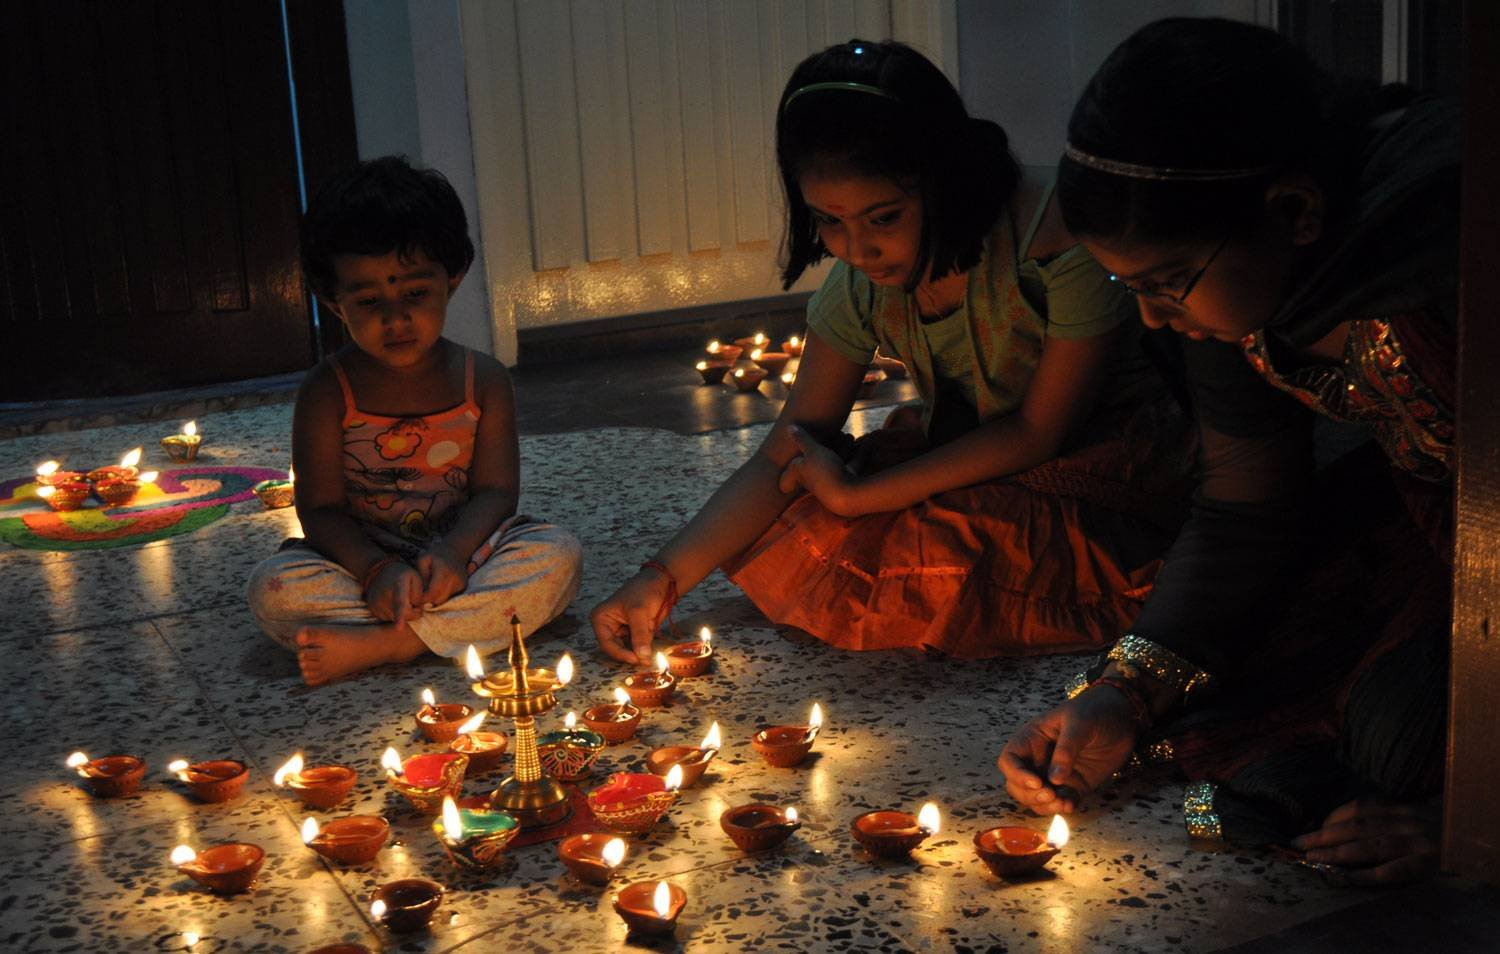 deepavali festival essay in tamil Diwali is a five day festival in many regions of india, with diwali night centering on the new moon - the darkest night - at the end of the hindu lunar month of ashvin and the start of the month of kartika.